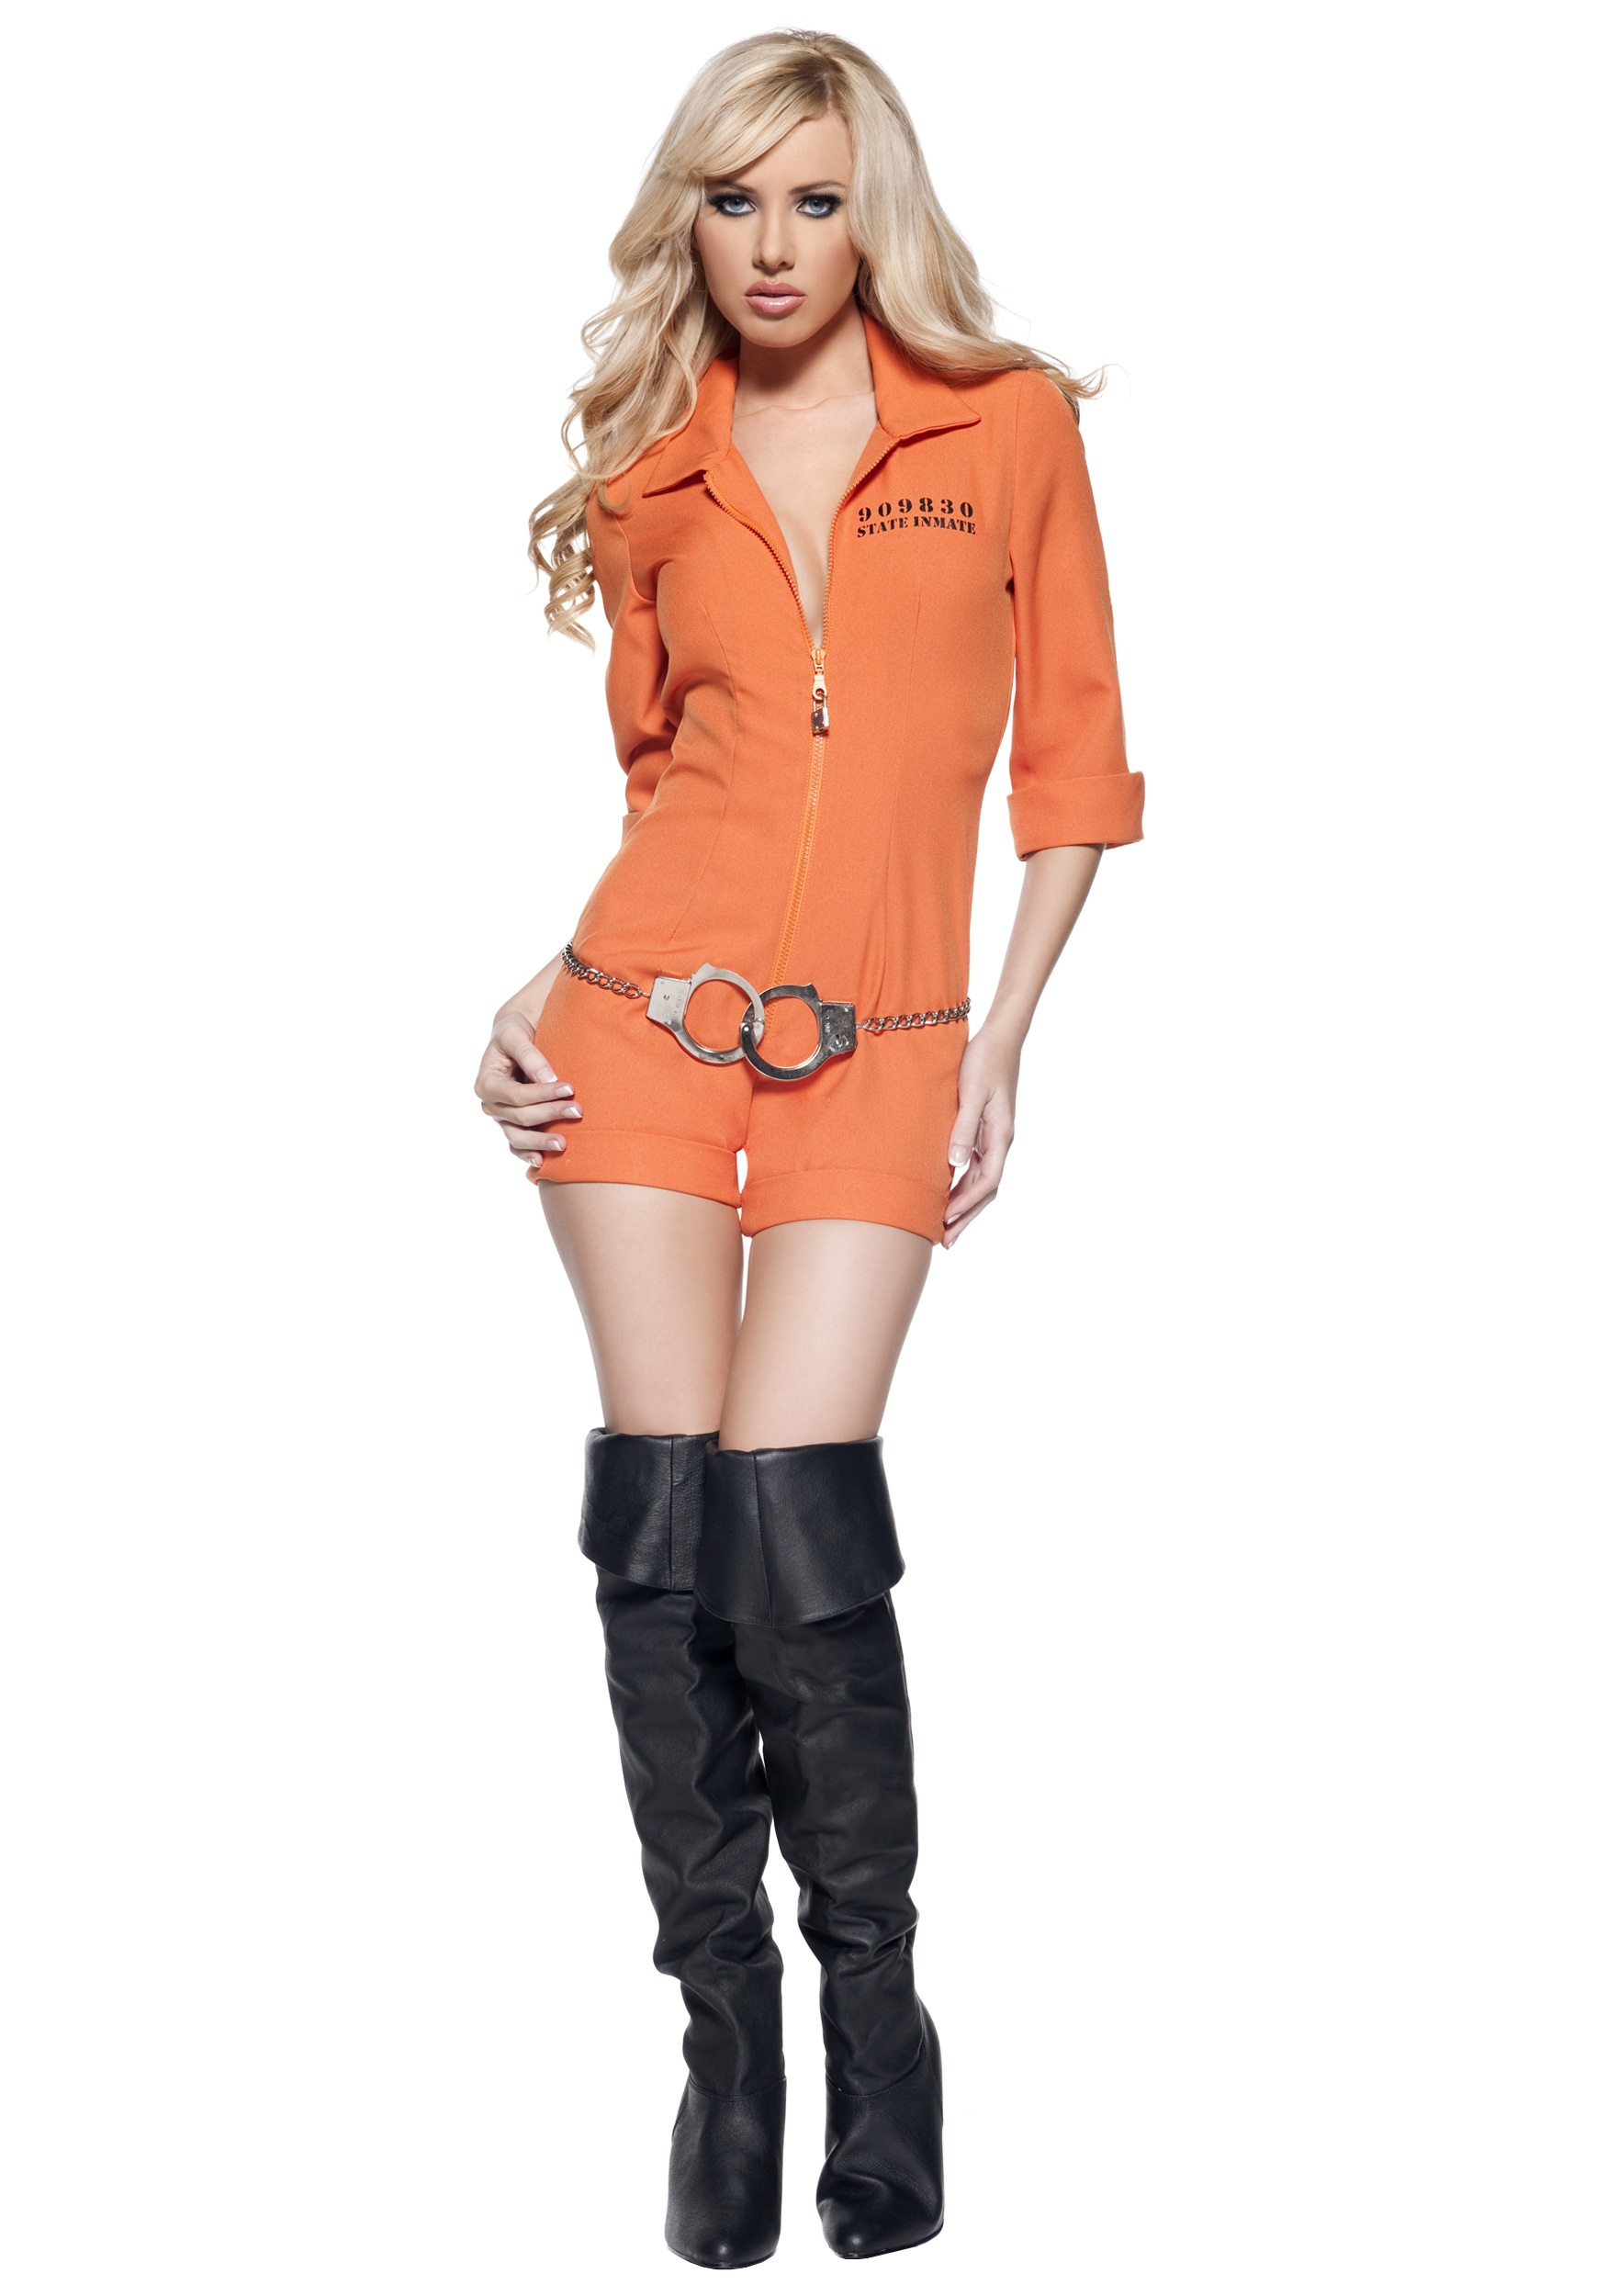 Lastest Show Off Your Bad Side At Your Next Party With This Adult Prisoner Costume Whether Youre Looking For Something Sexy Or Something Fun, This Vibrant Orange Polyester Romper Might Be The Perfect Solution This Costume Zips In Front So Its